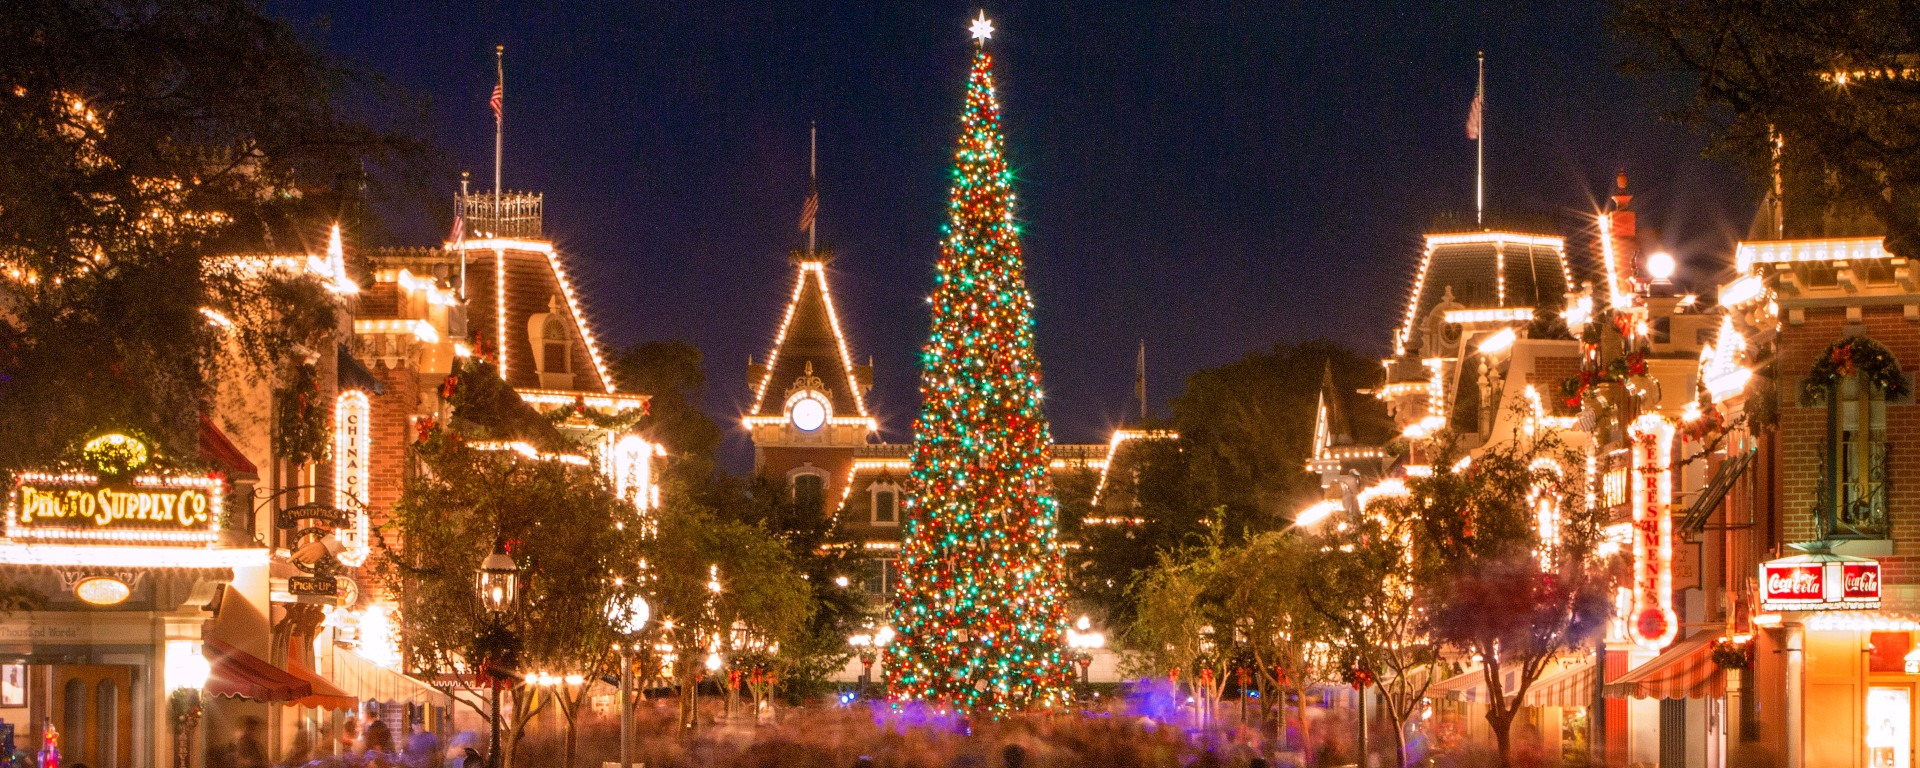 5 reasons to be excited about christmas at disneyland this year - When Does Disneyland Decorate For Christmas 2017